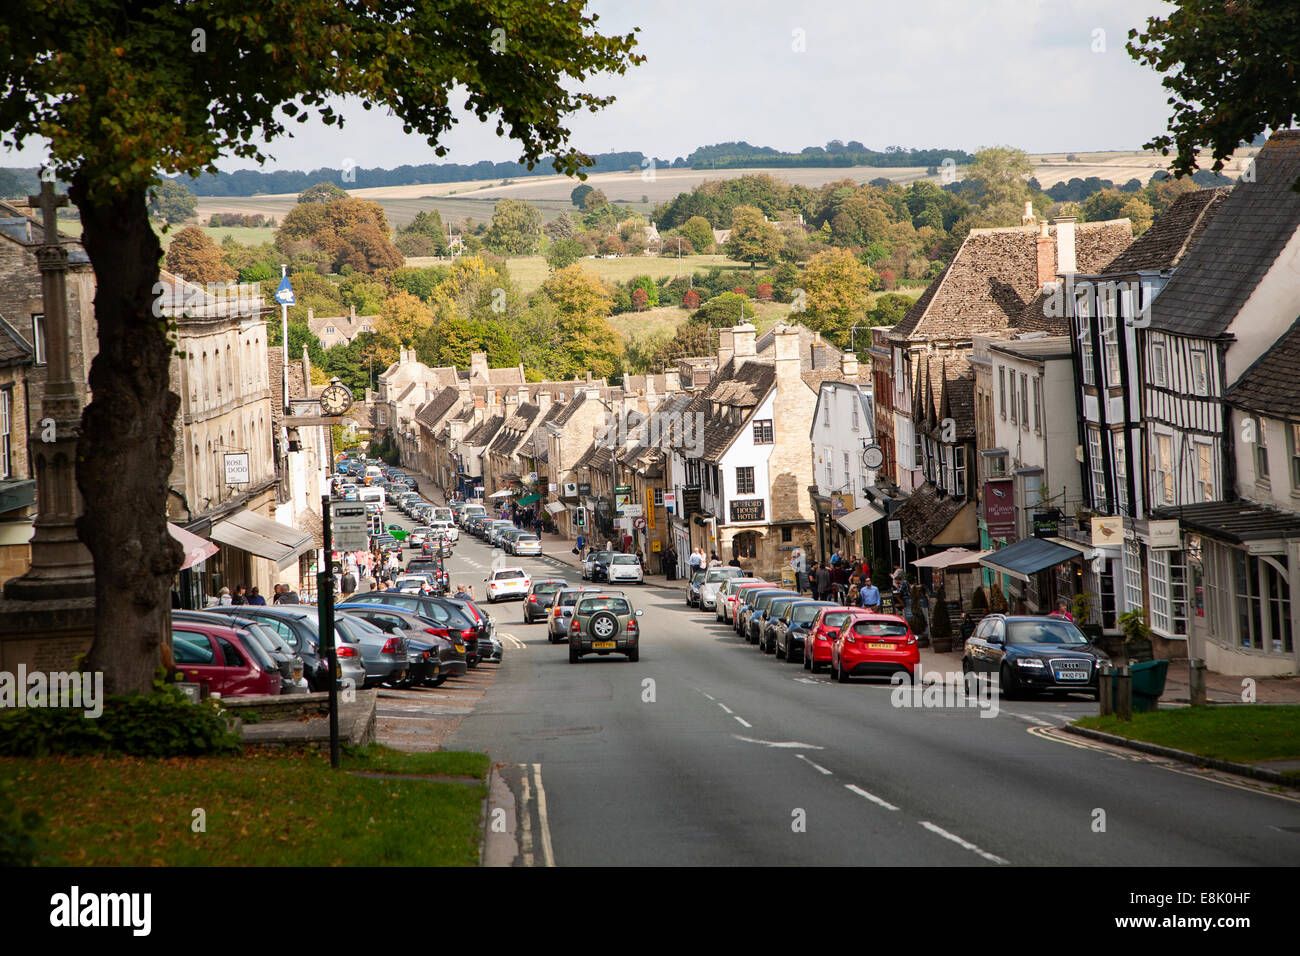 Tourist honeypot village street crowded with traffic in Burford, Oxfordshire, England, UK - Stock Image